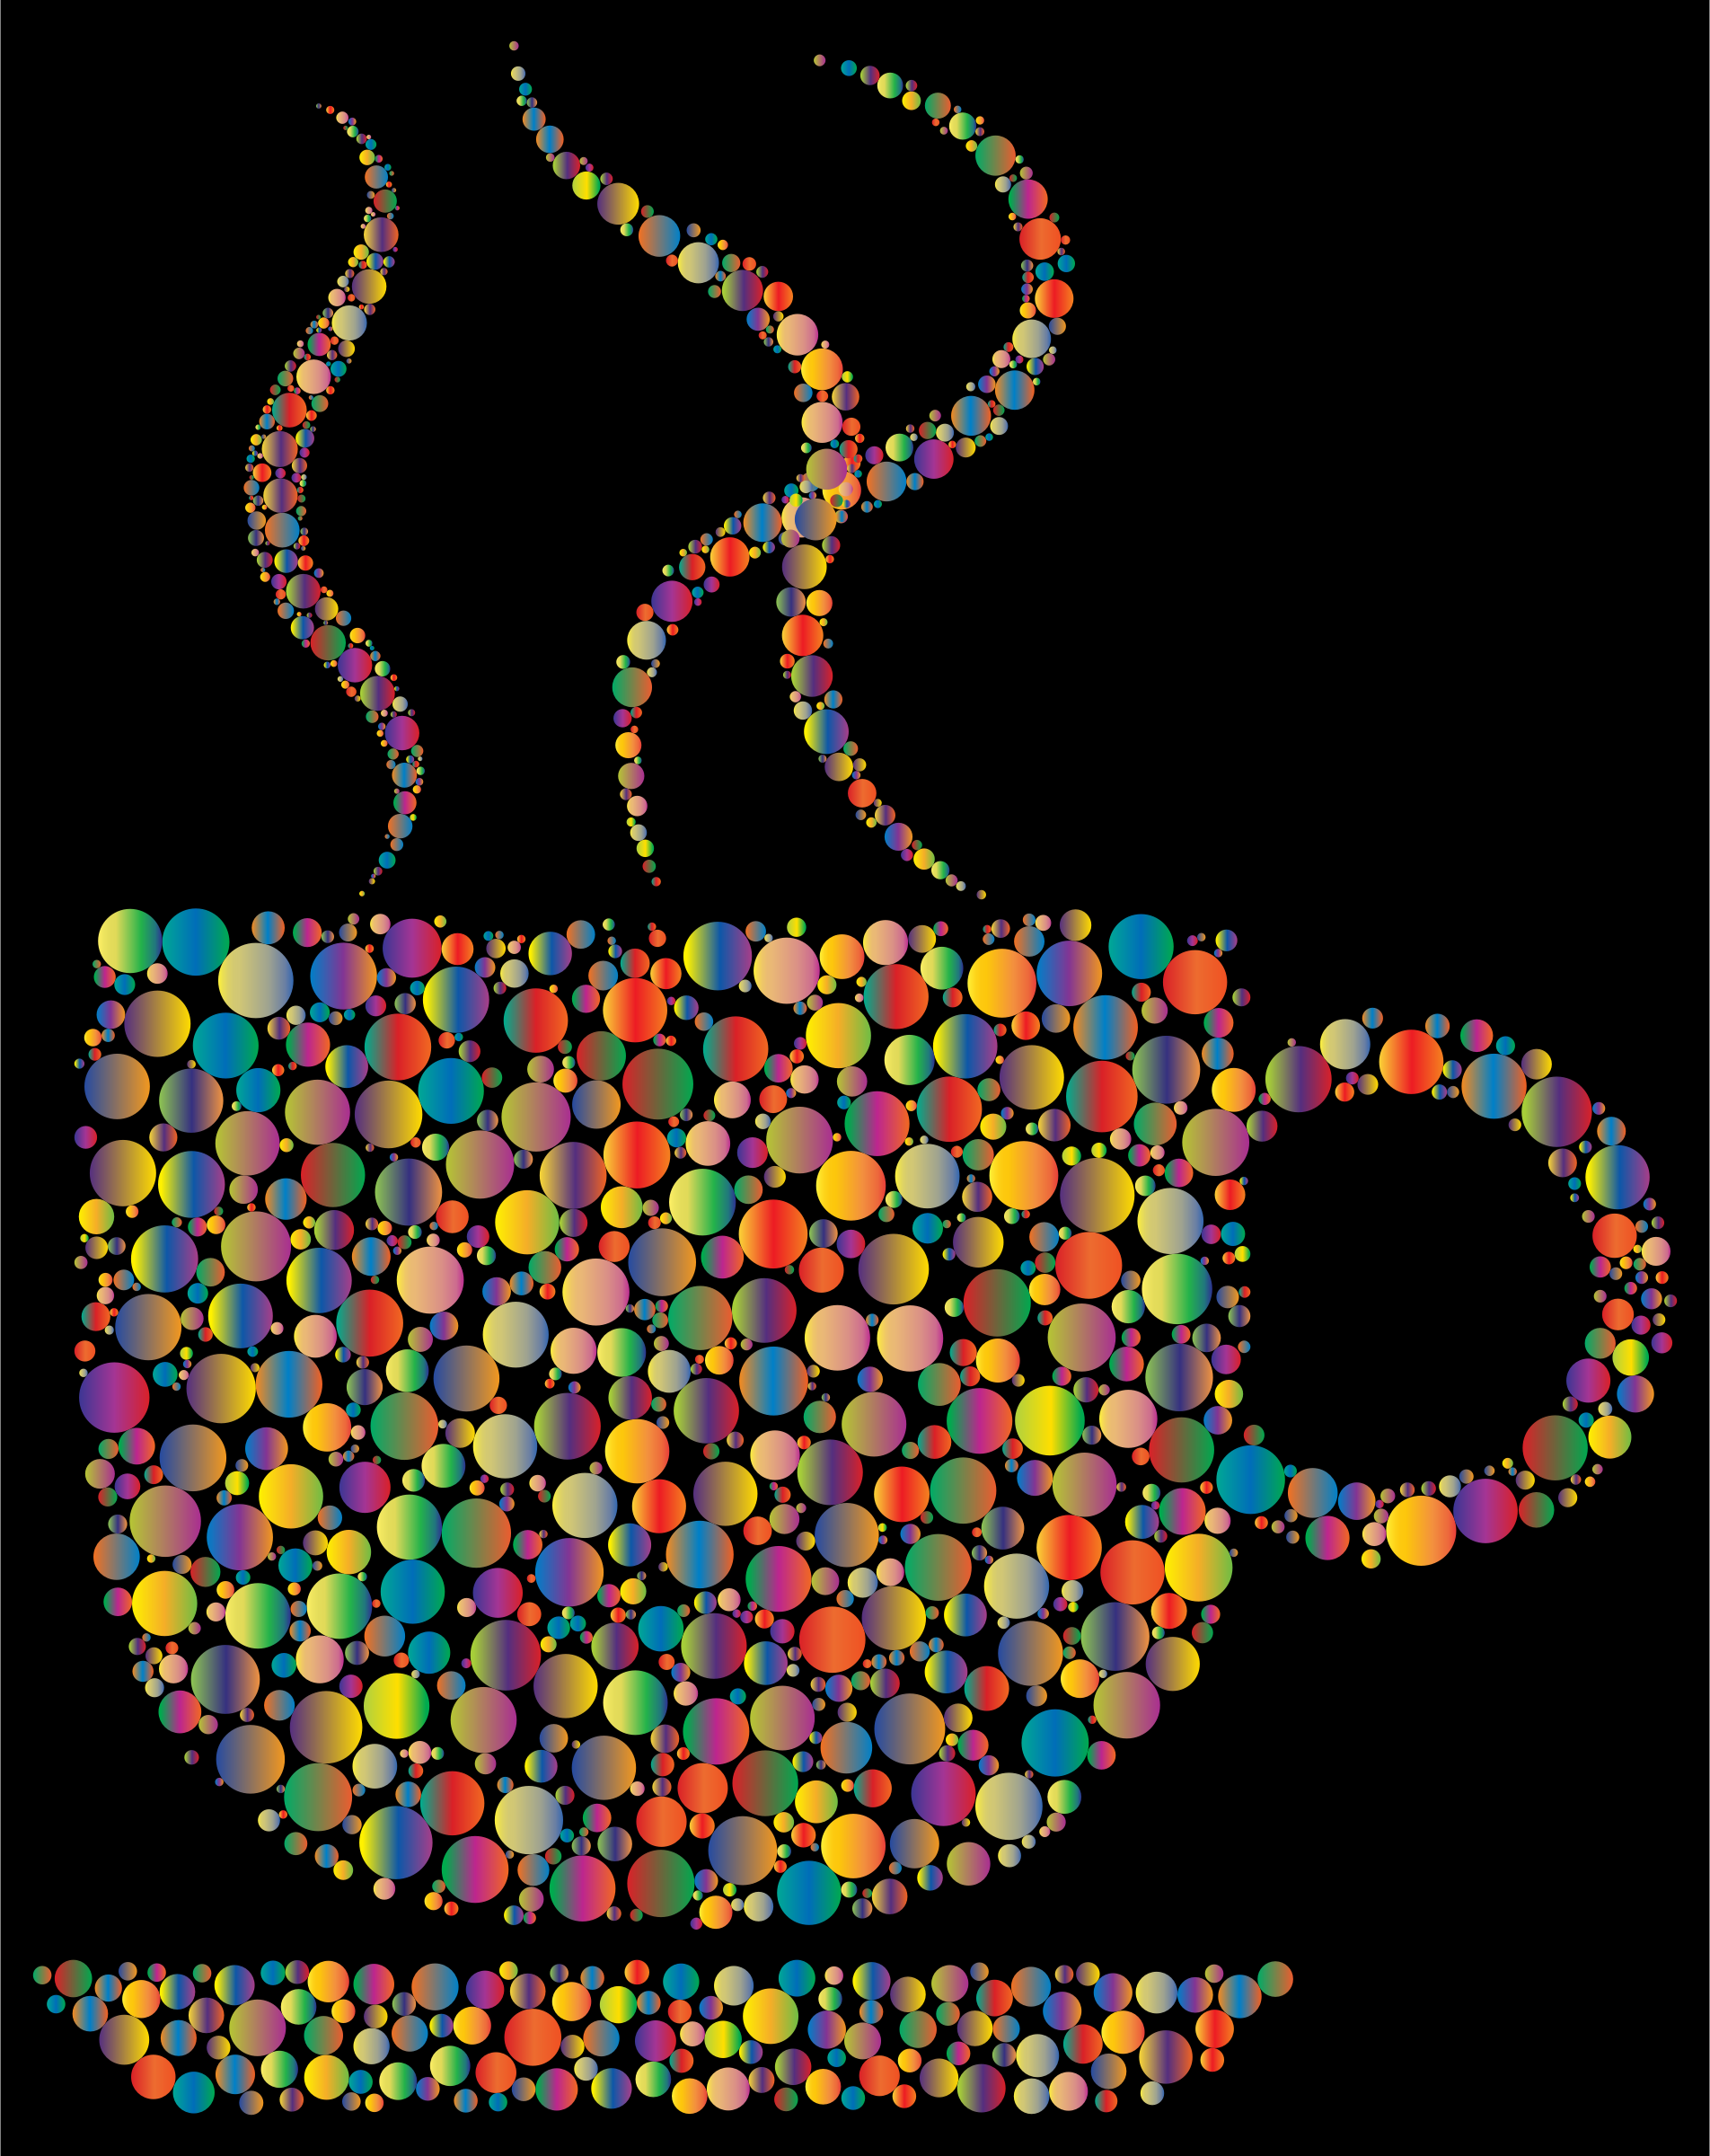 Colorful Coffee Circles 4 With Black Background by GDJ